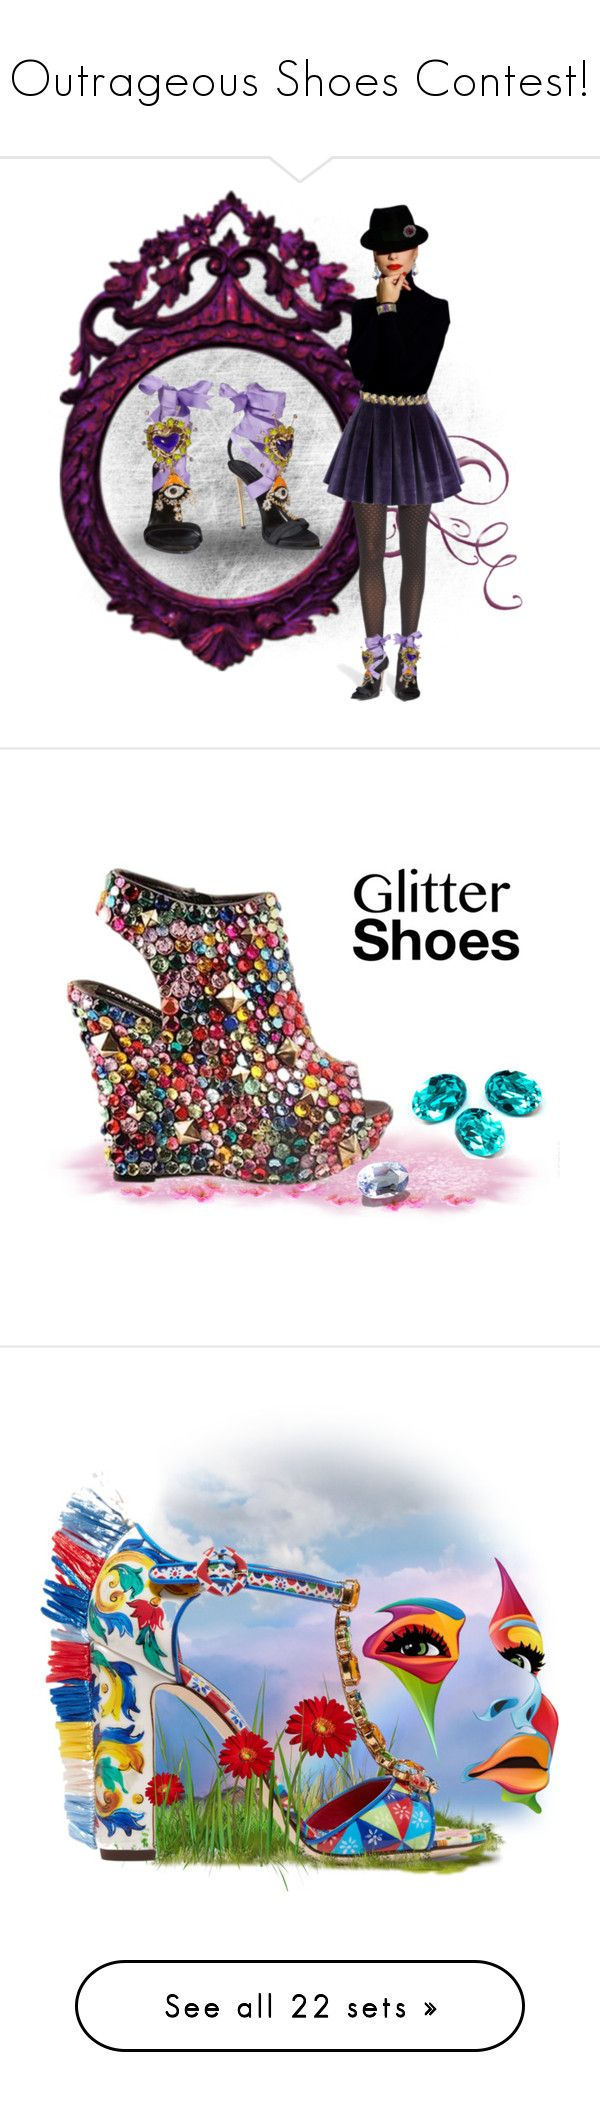 """""""Outrageous Shoes Contest!"""" by rboowybe ❤ liked on Polyvore featuring art, Dolce&Gabbana, Sophia Webster, Miu Miu, Irregular Choice, Givenchy, dolceandgabbana, Vetements, MSGM and Lee Savage"""